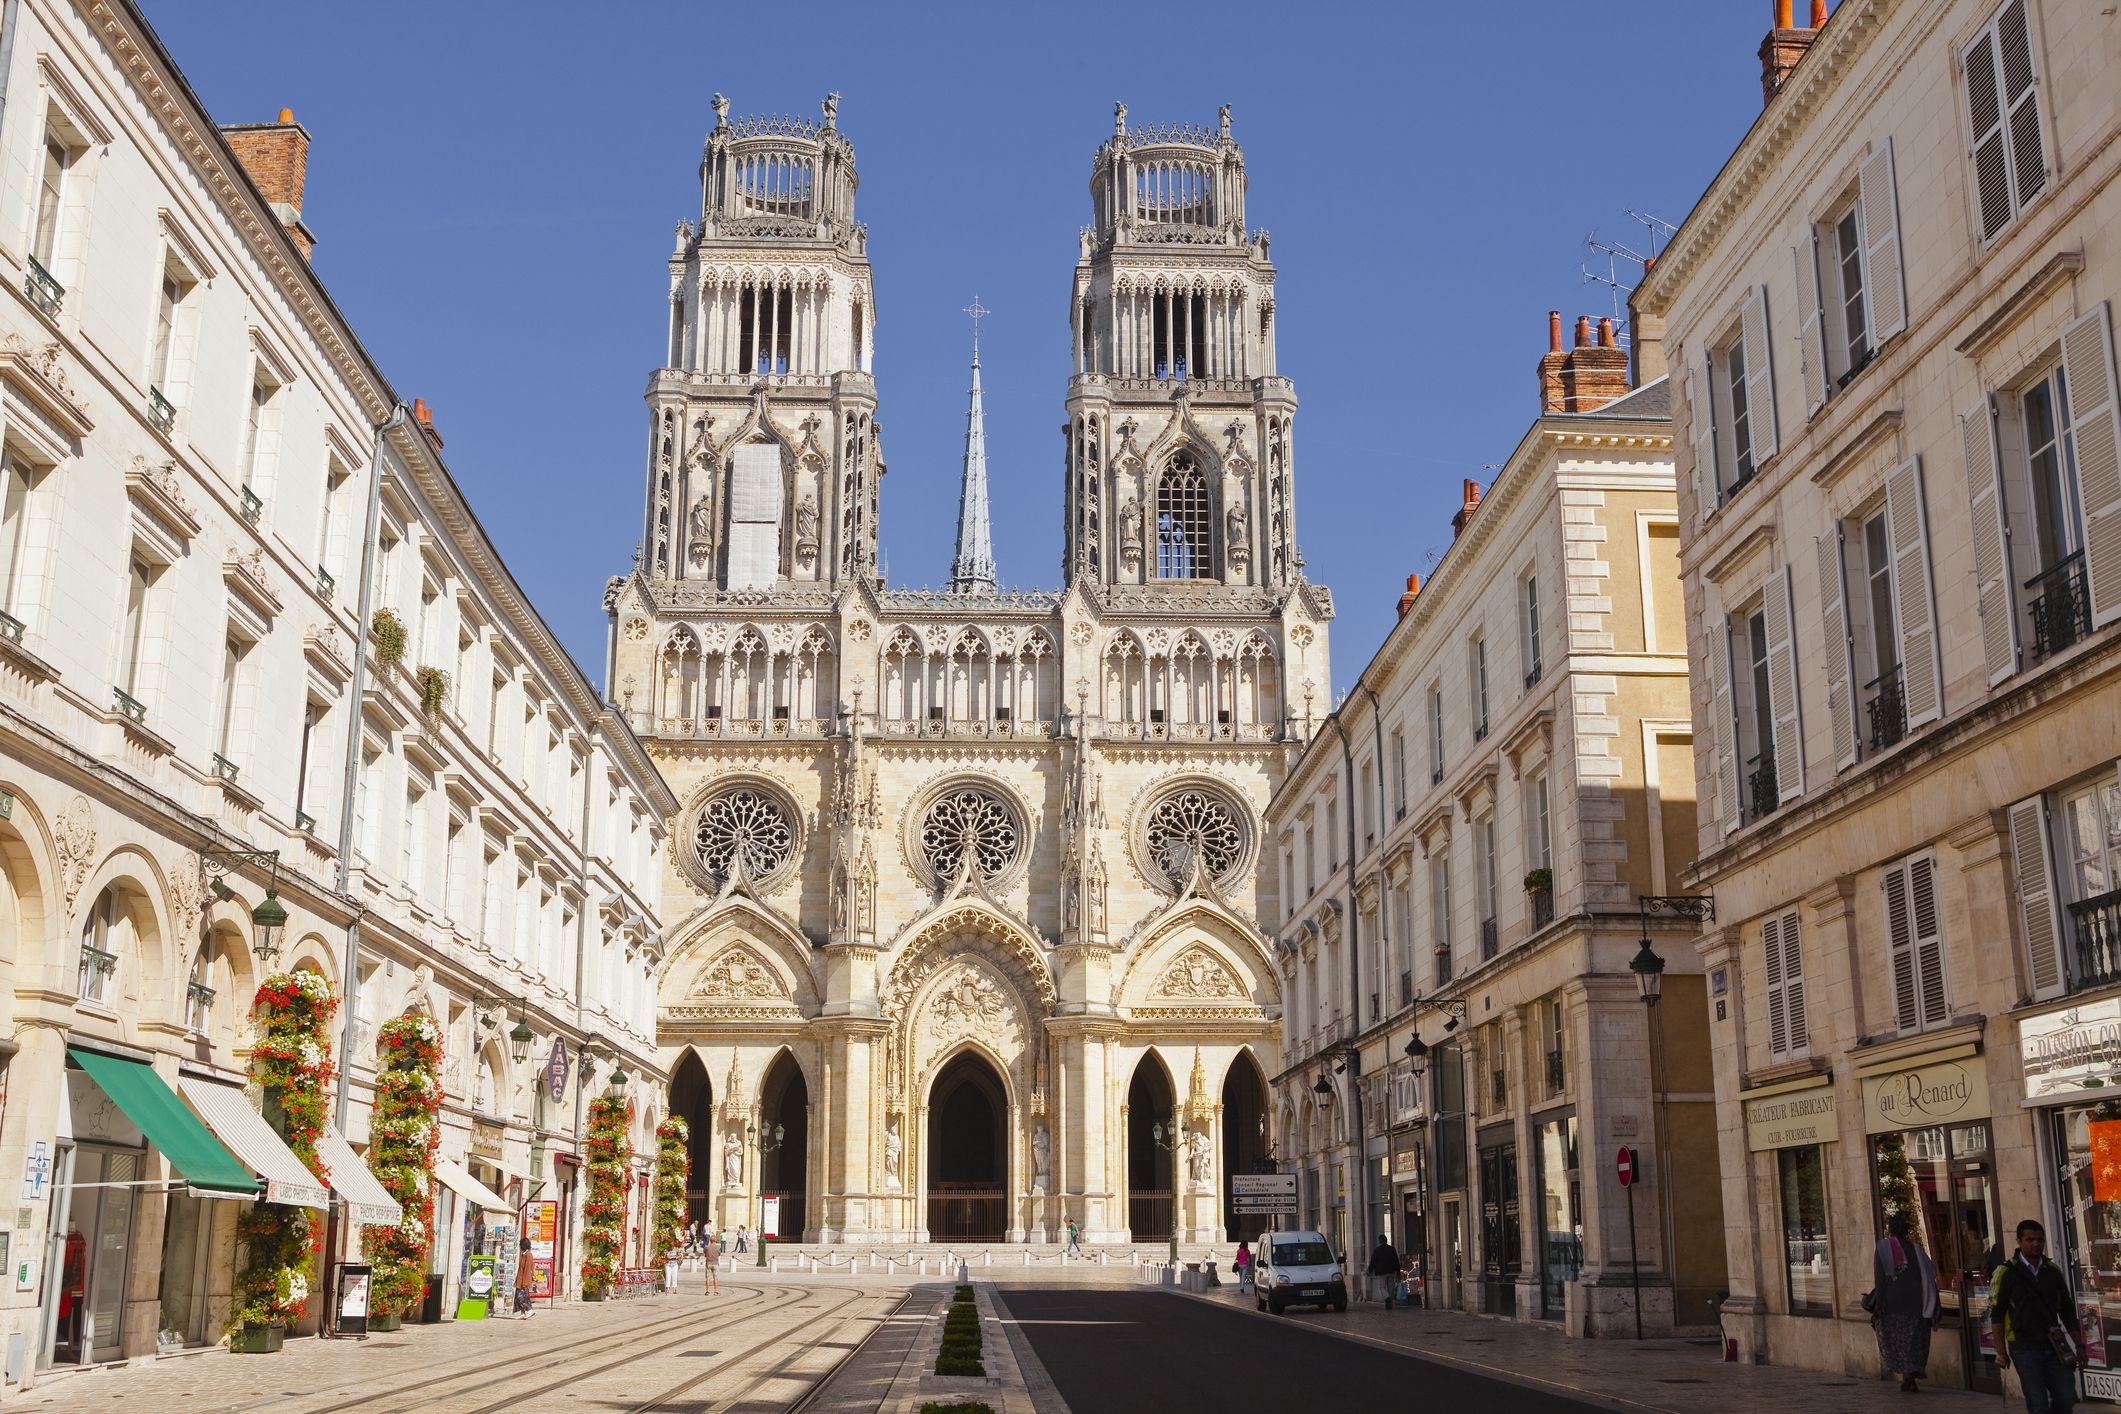 The Cathedrale Sainte Croix dOrleans (Cathedral of Orleans), Orleans, Loiret, France, Europe